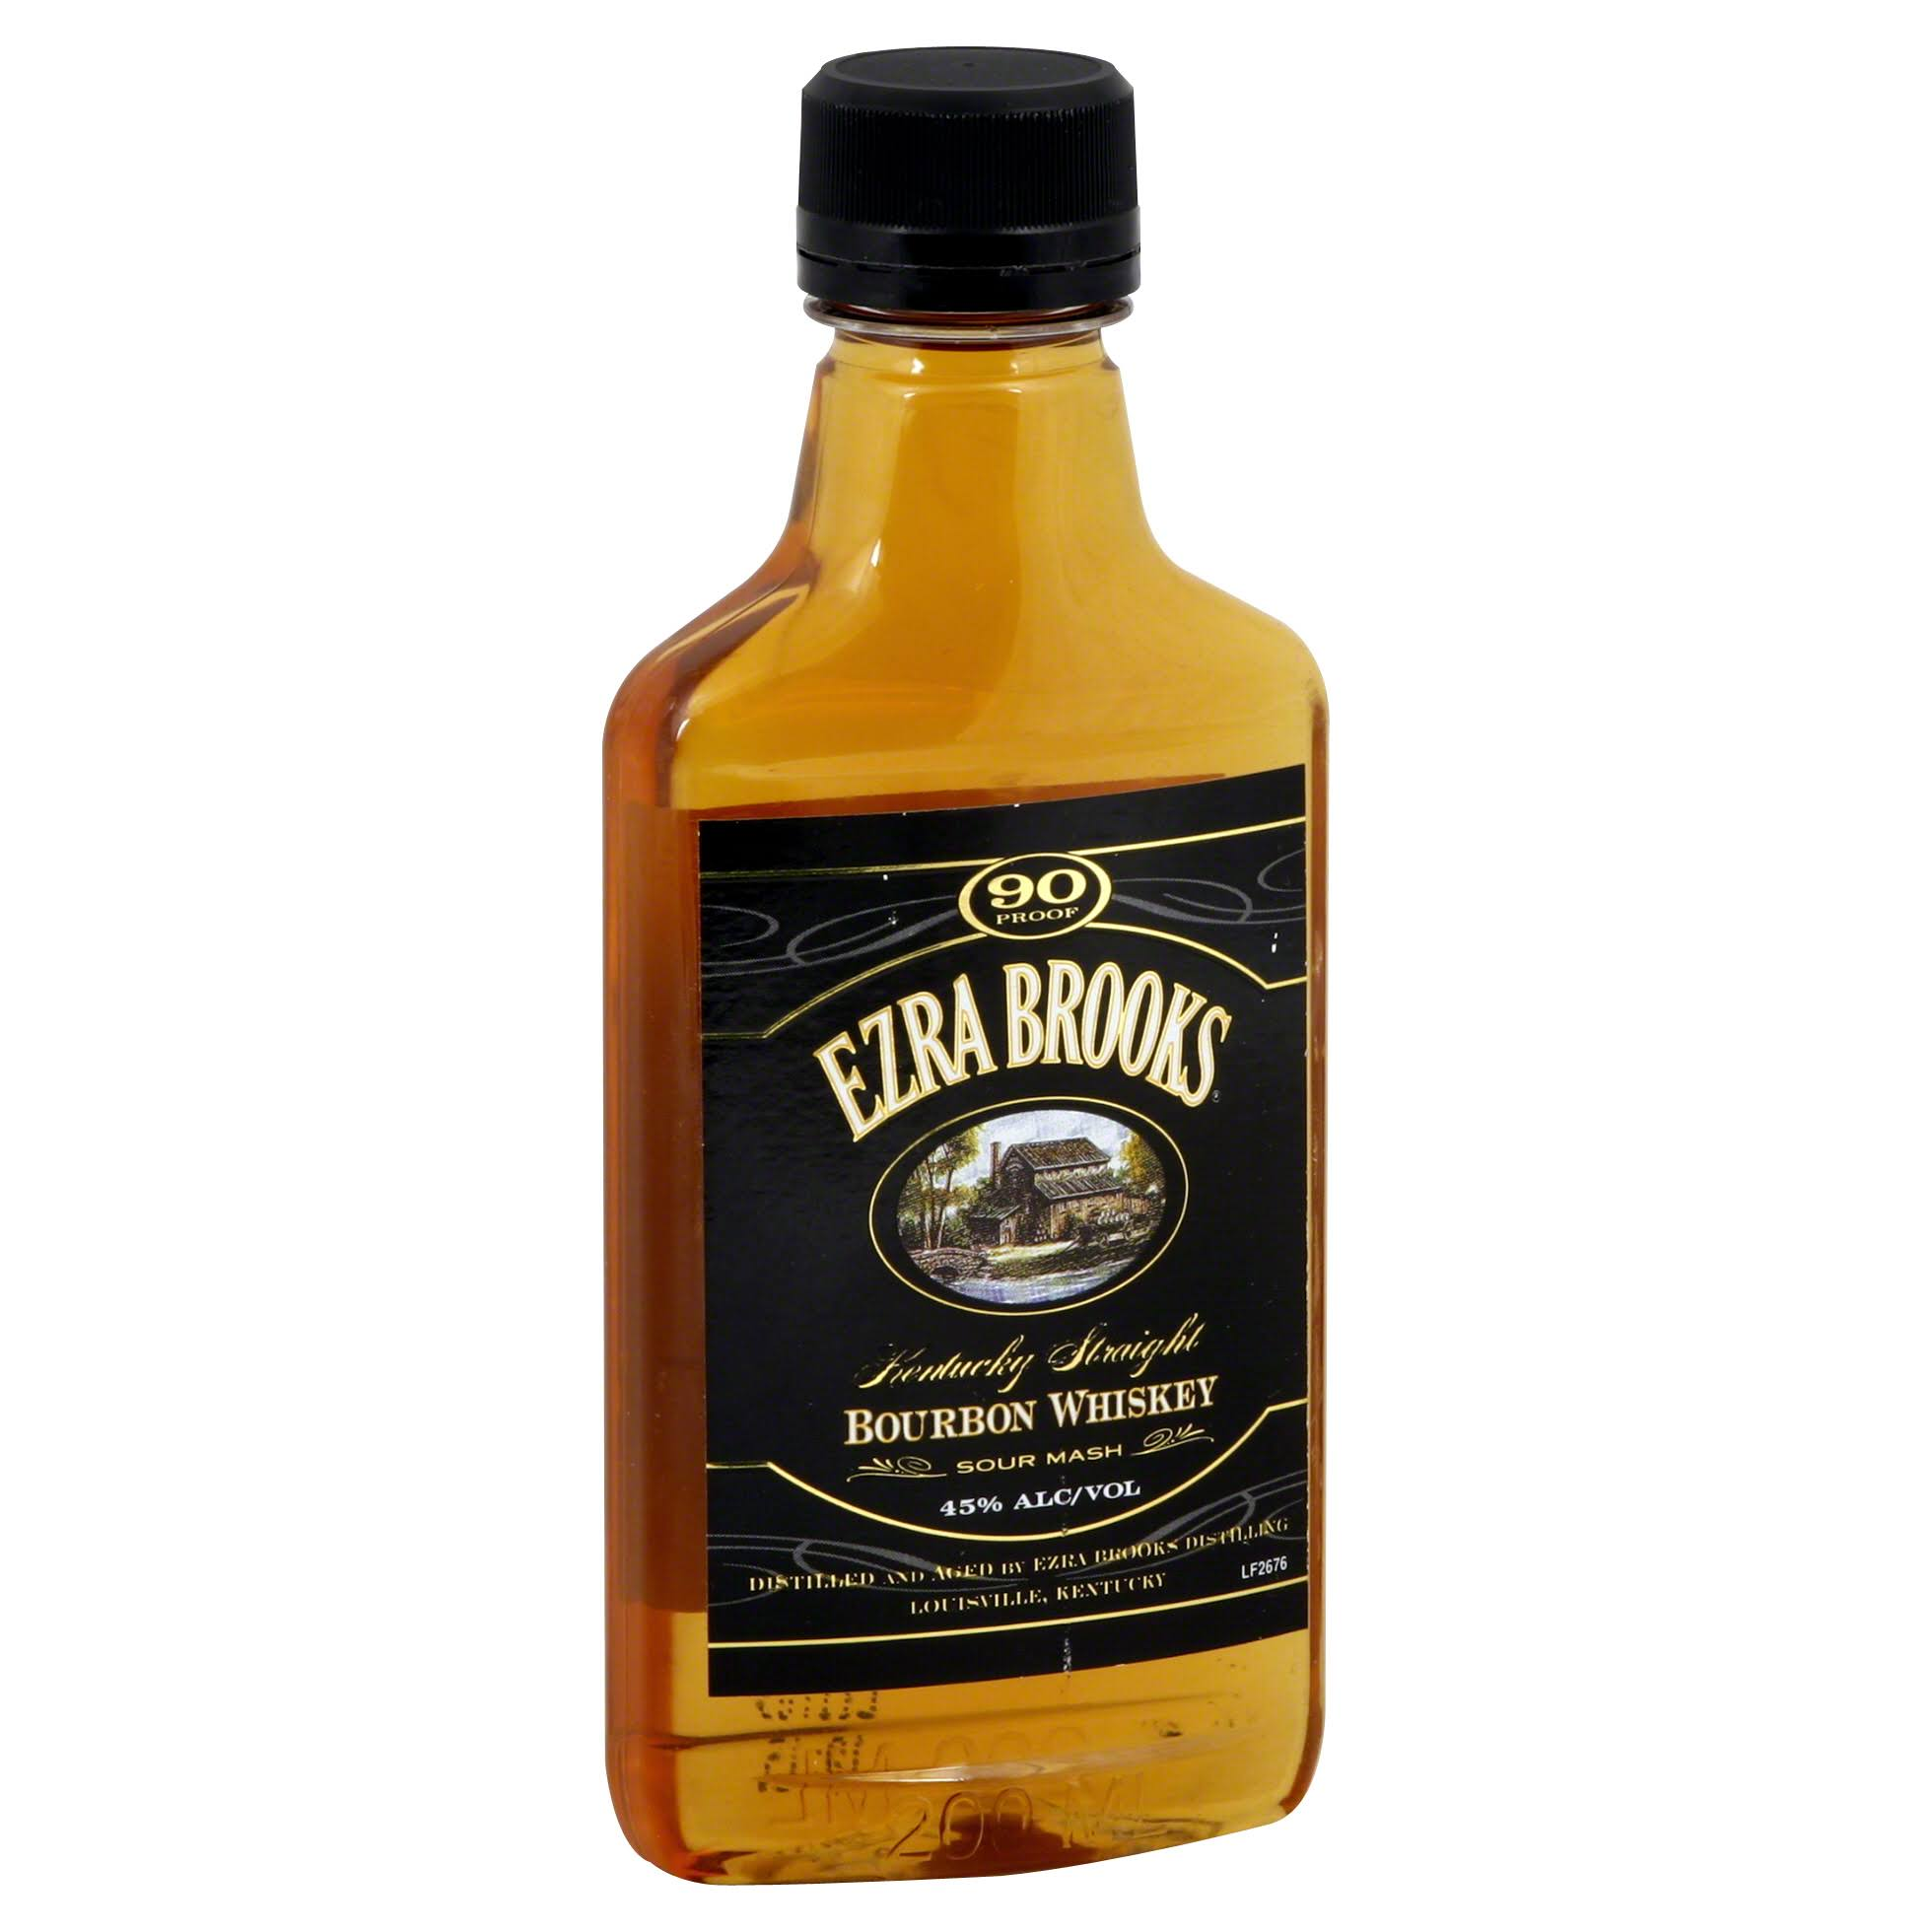 Ezra Brooks Bourbon Whiskey, Kentucky Straight, Sour Mash - 200 ml